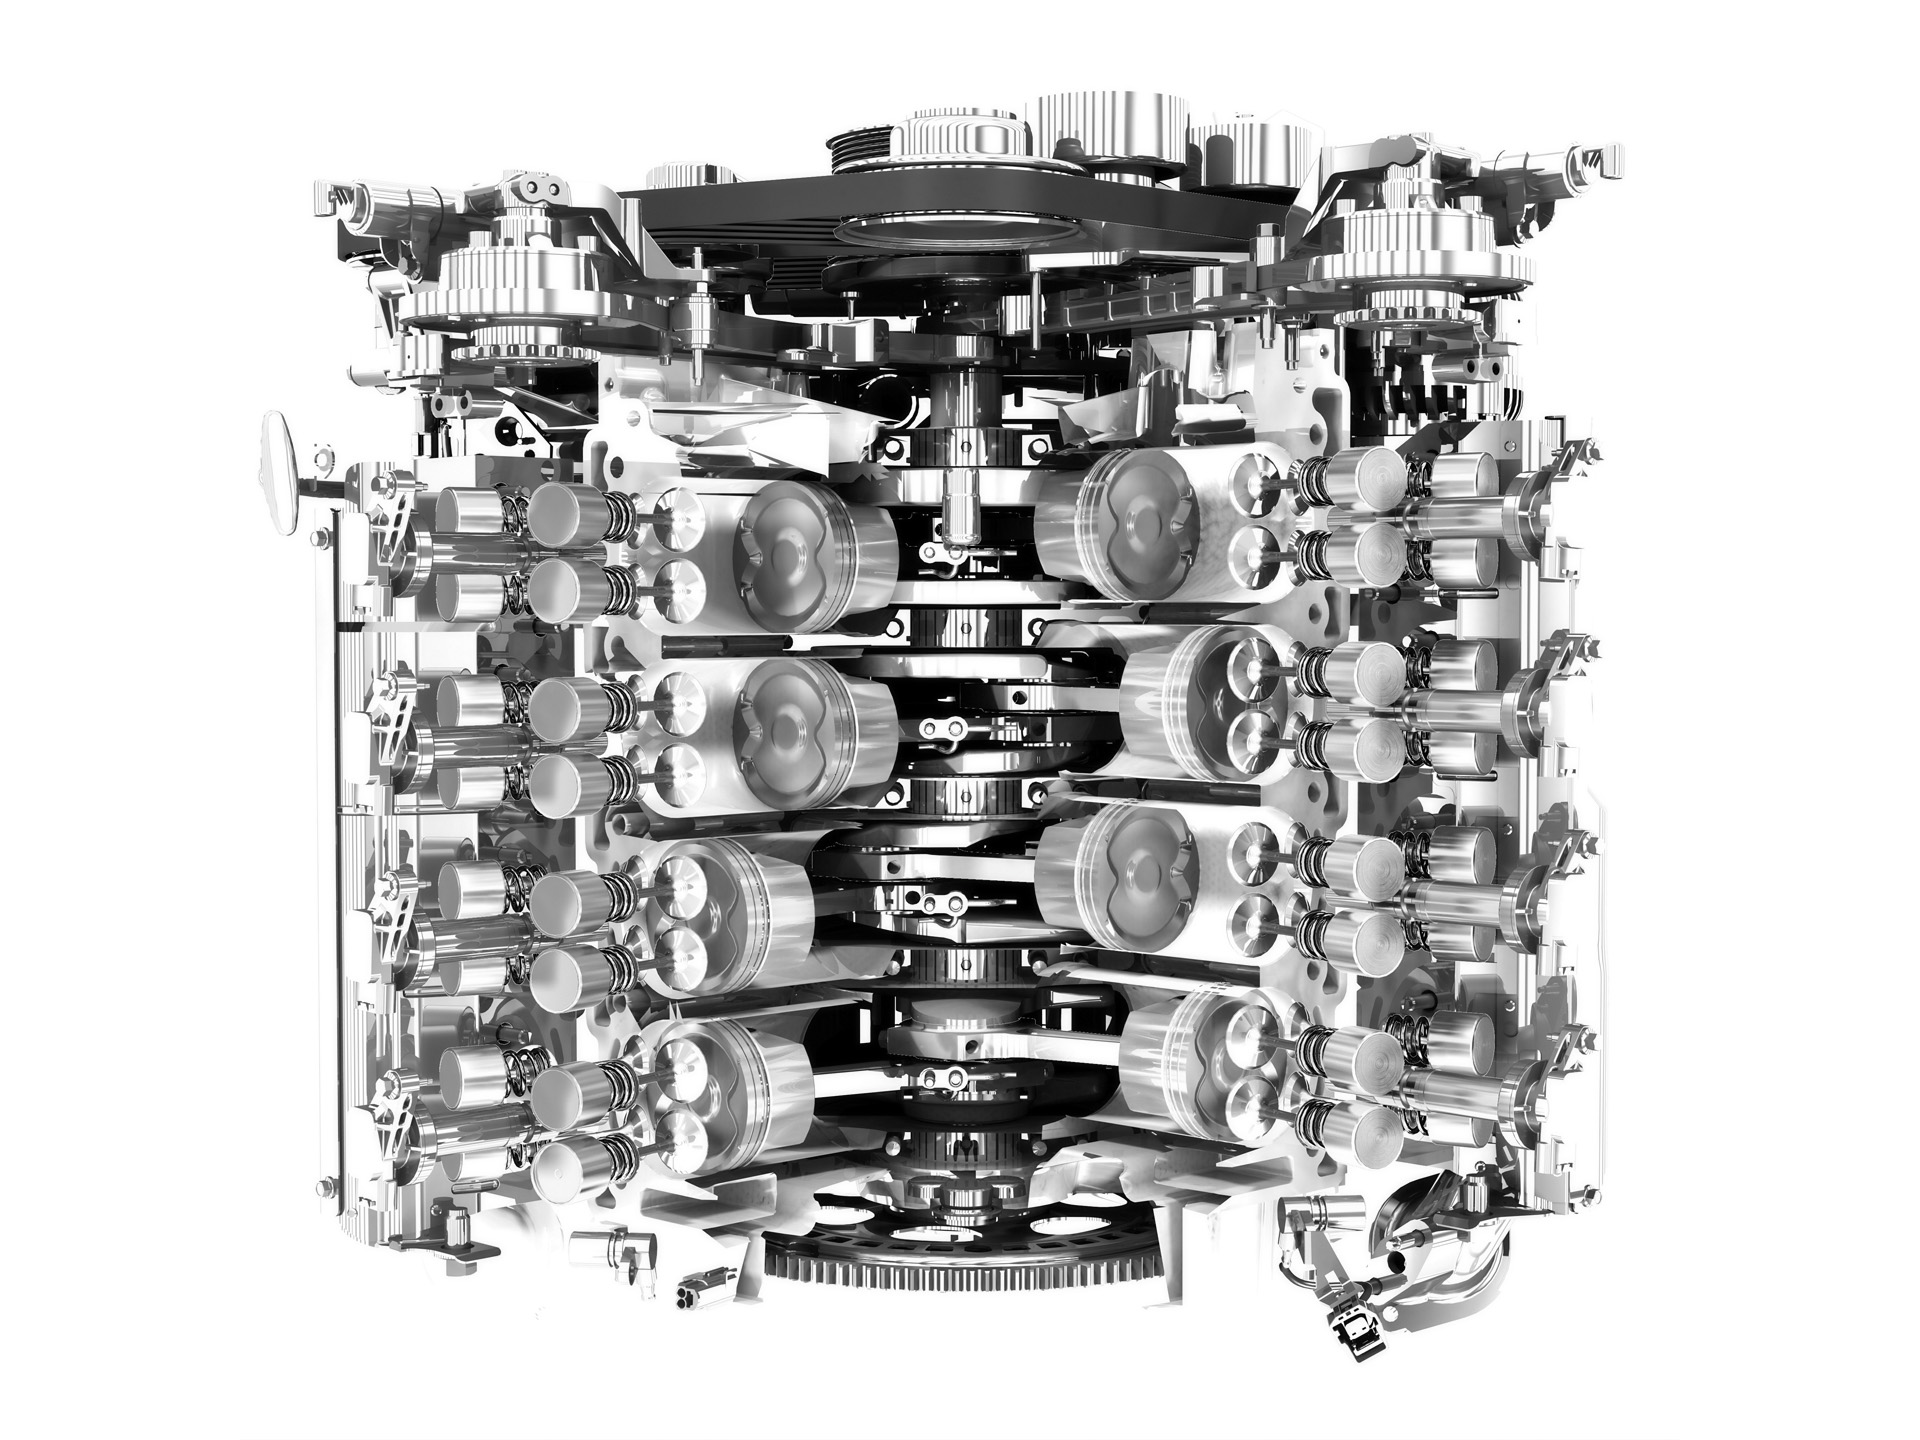 Sample P2484 Engine